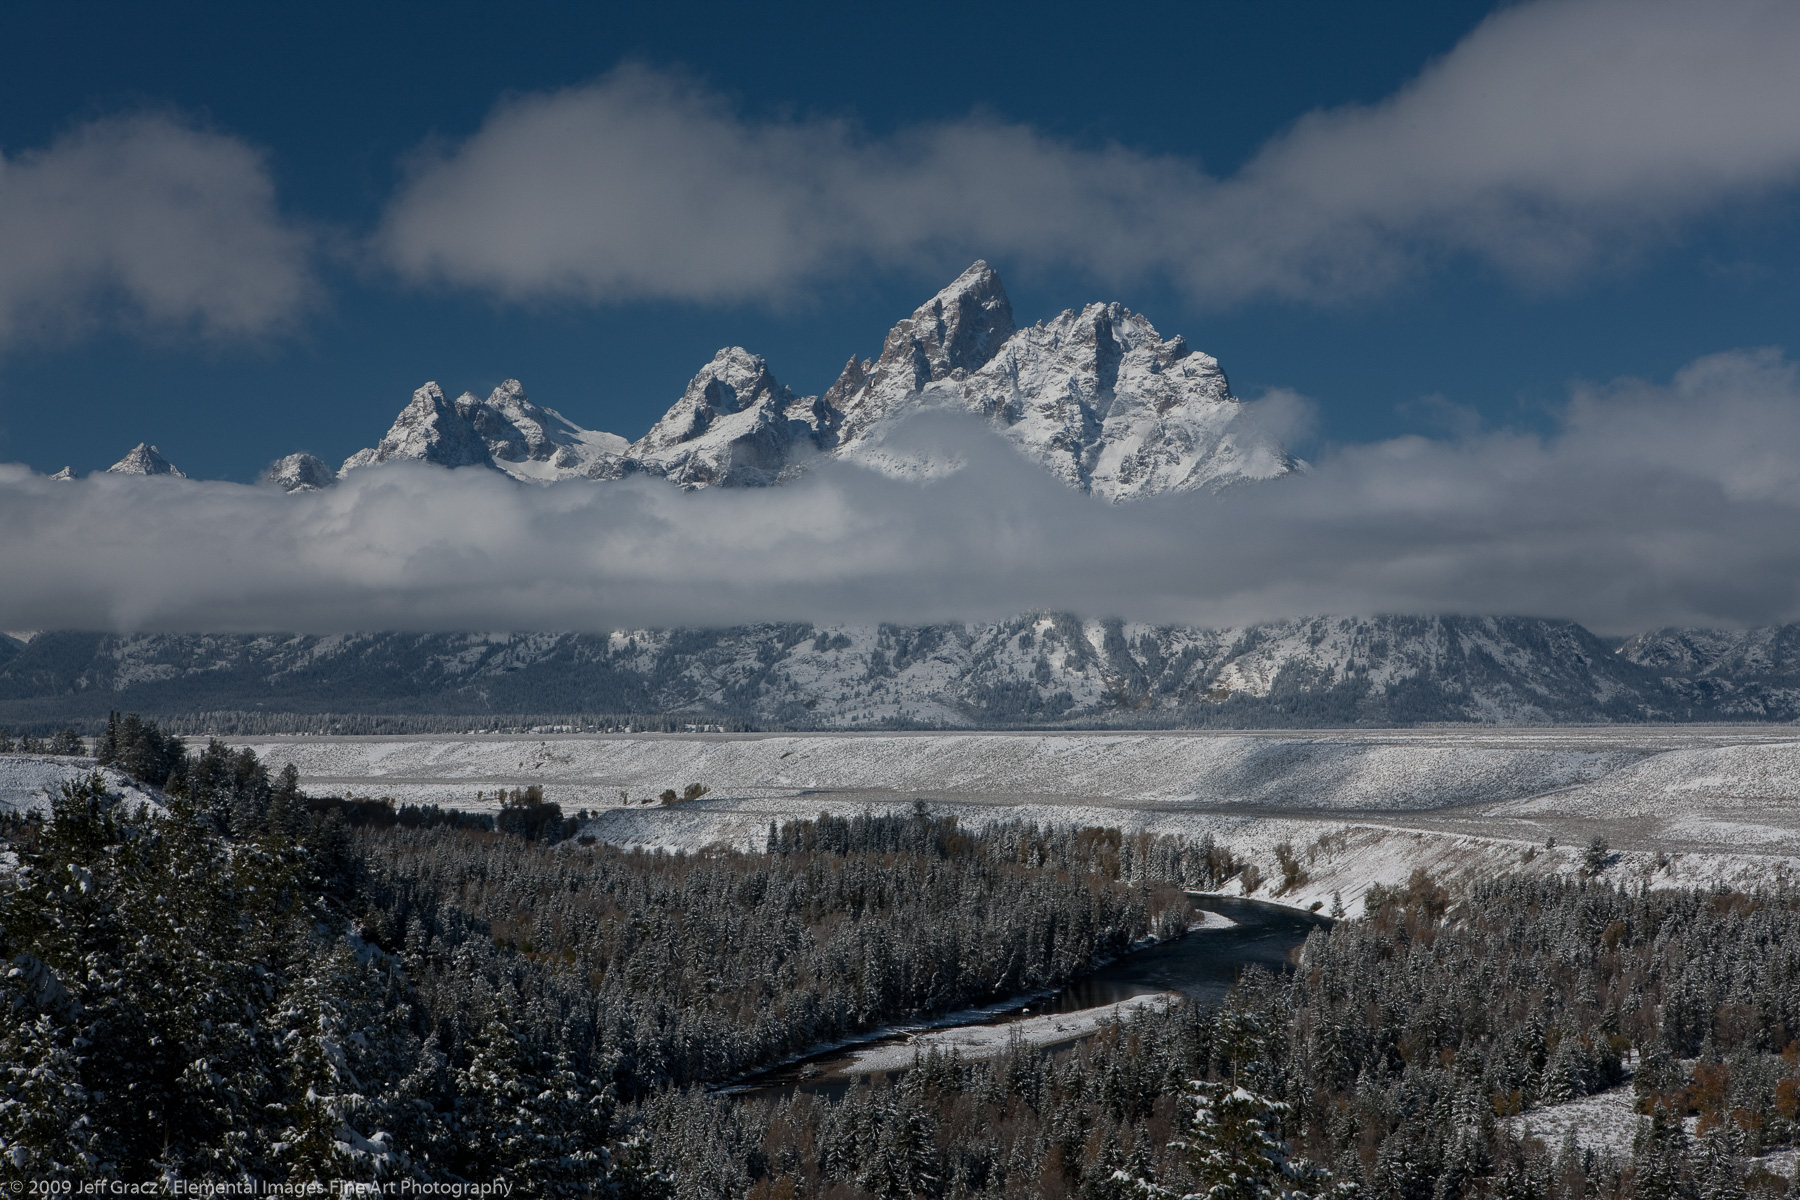 Grand Tetons in early winter | Grand Teton National Park | WY | USA - © © 2009 Jeff Gracz / Elemental Images Fine Art Photography - All Rights Reserved Worldwide